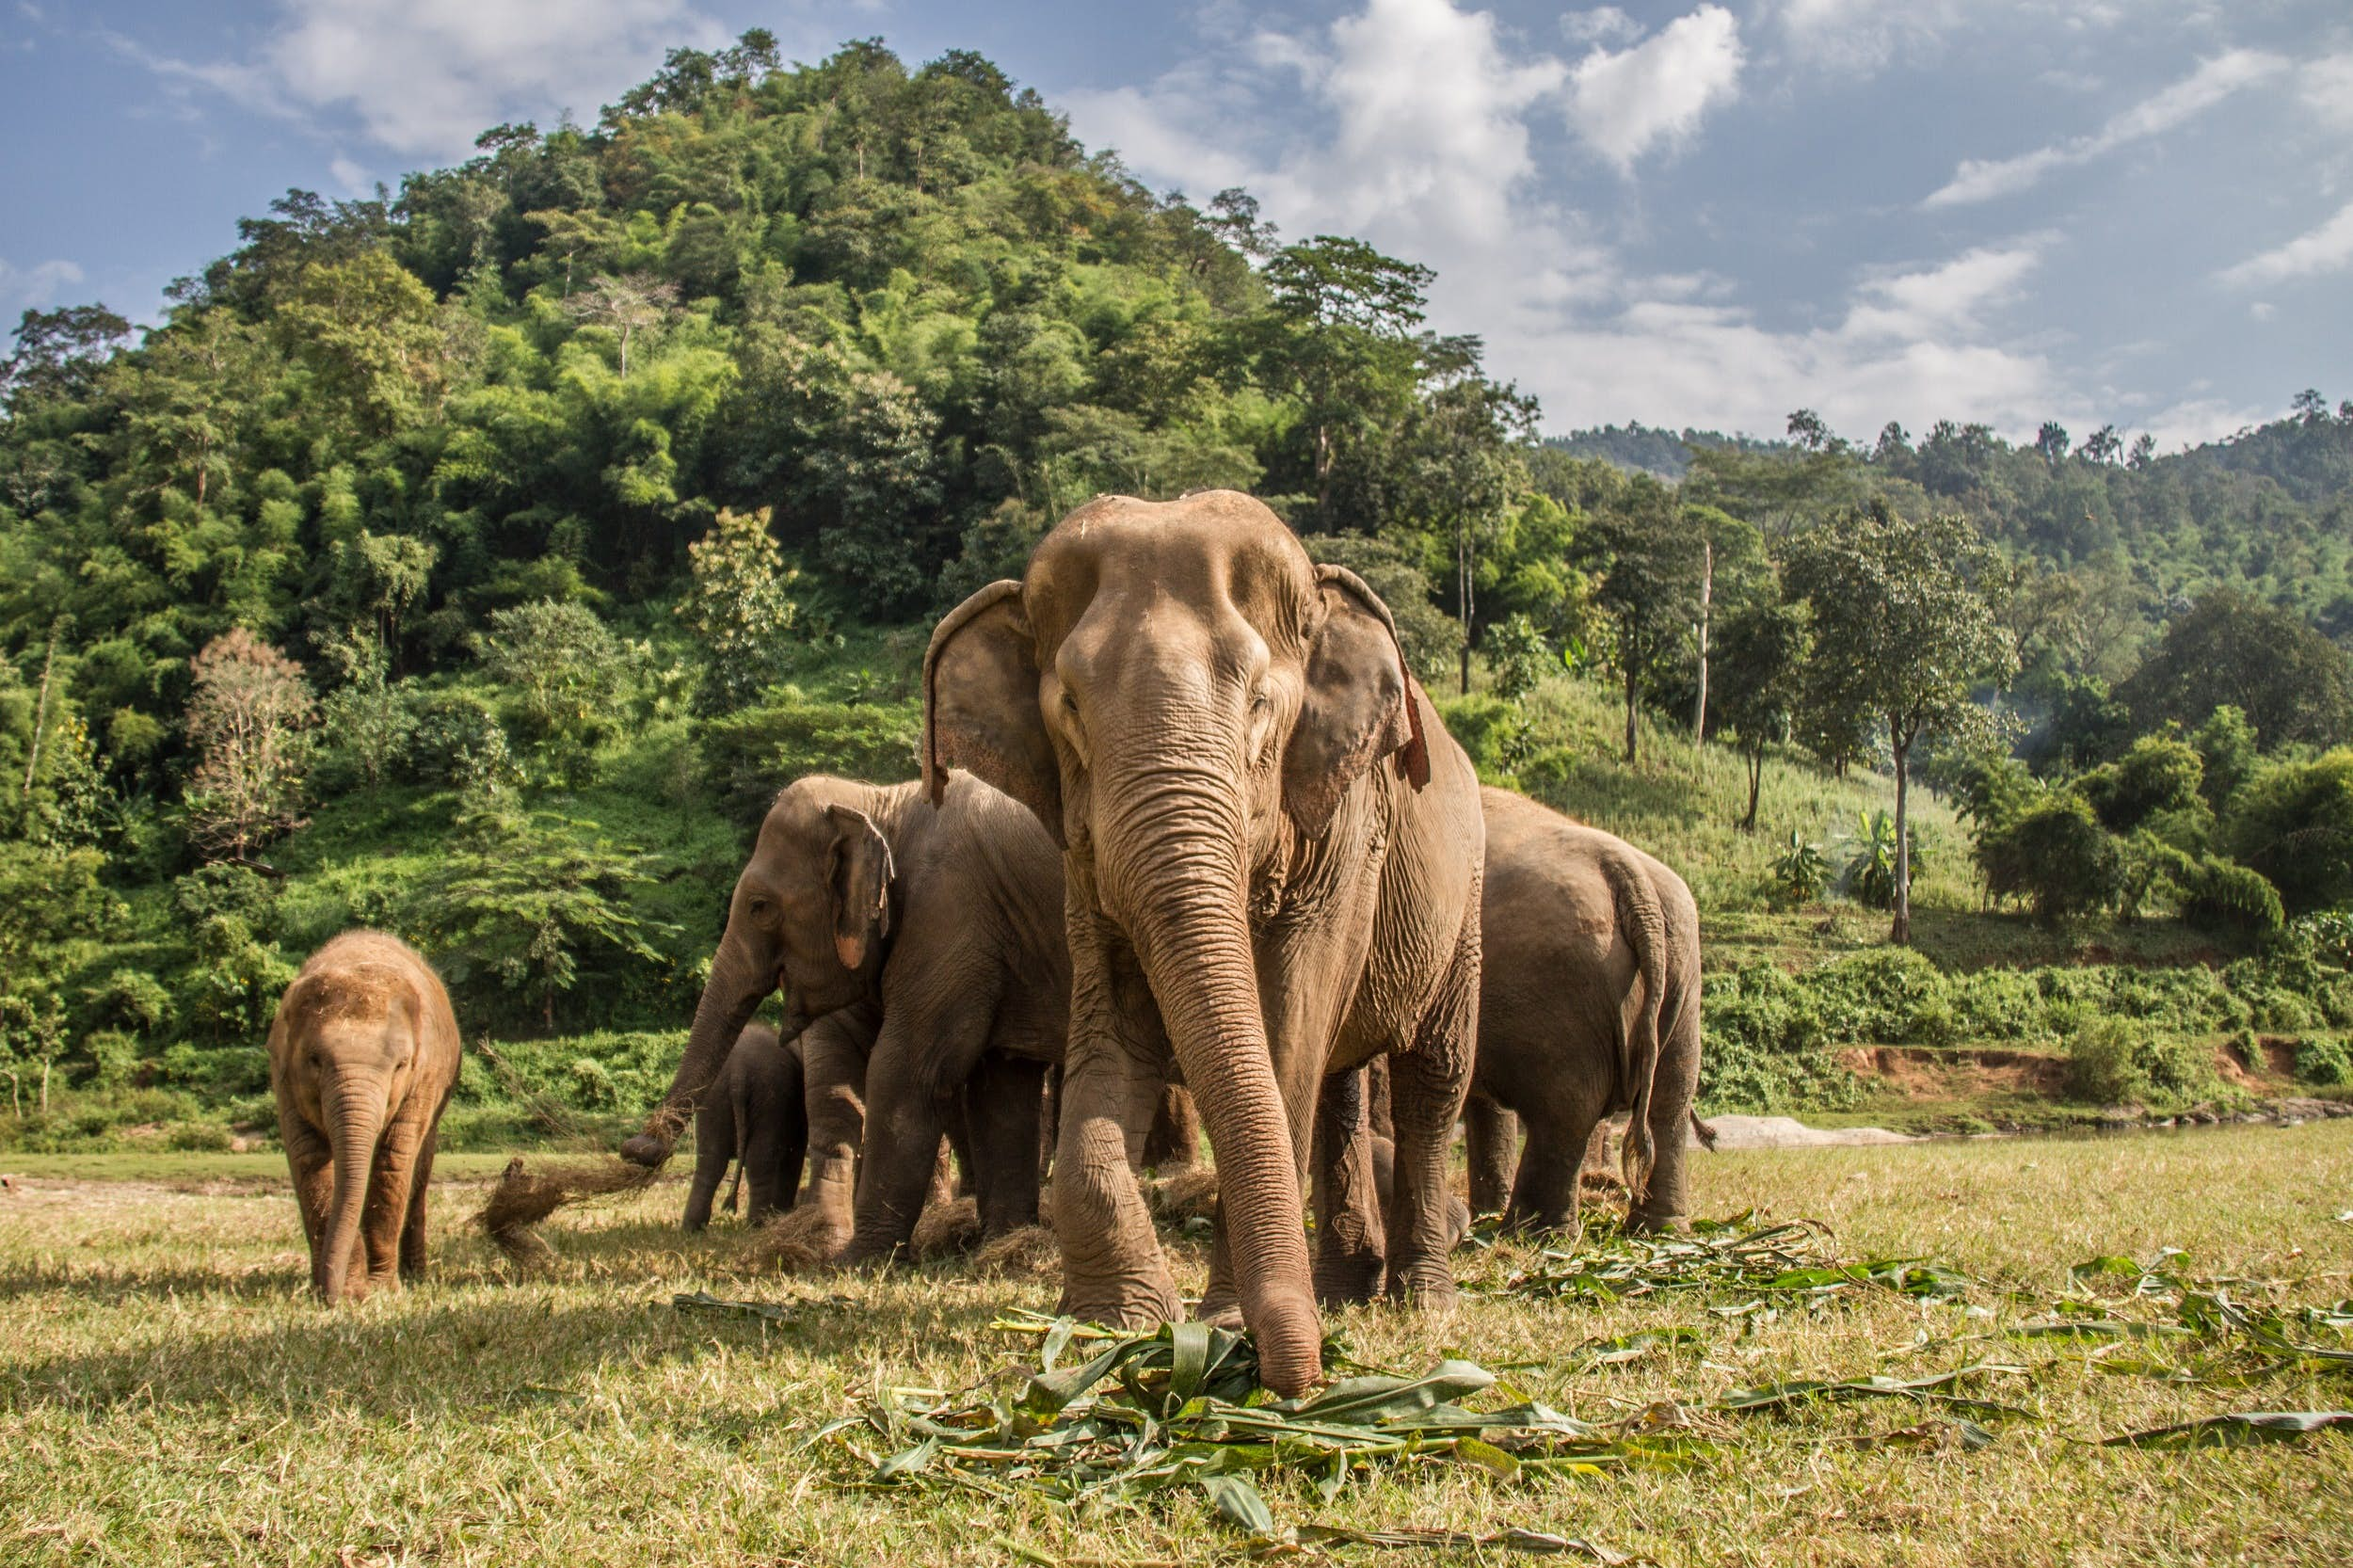 How to interact ethically with elephants in Thailand - Lonely Planet